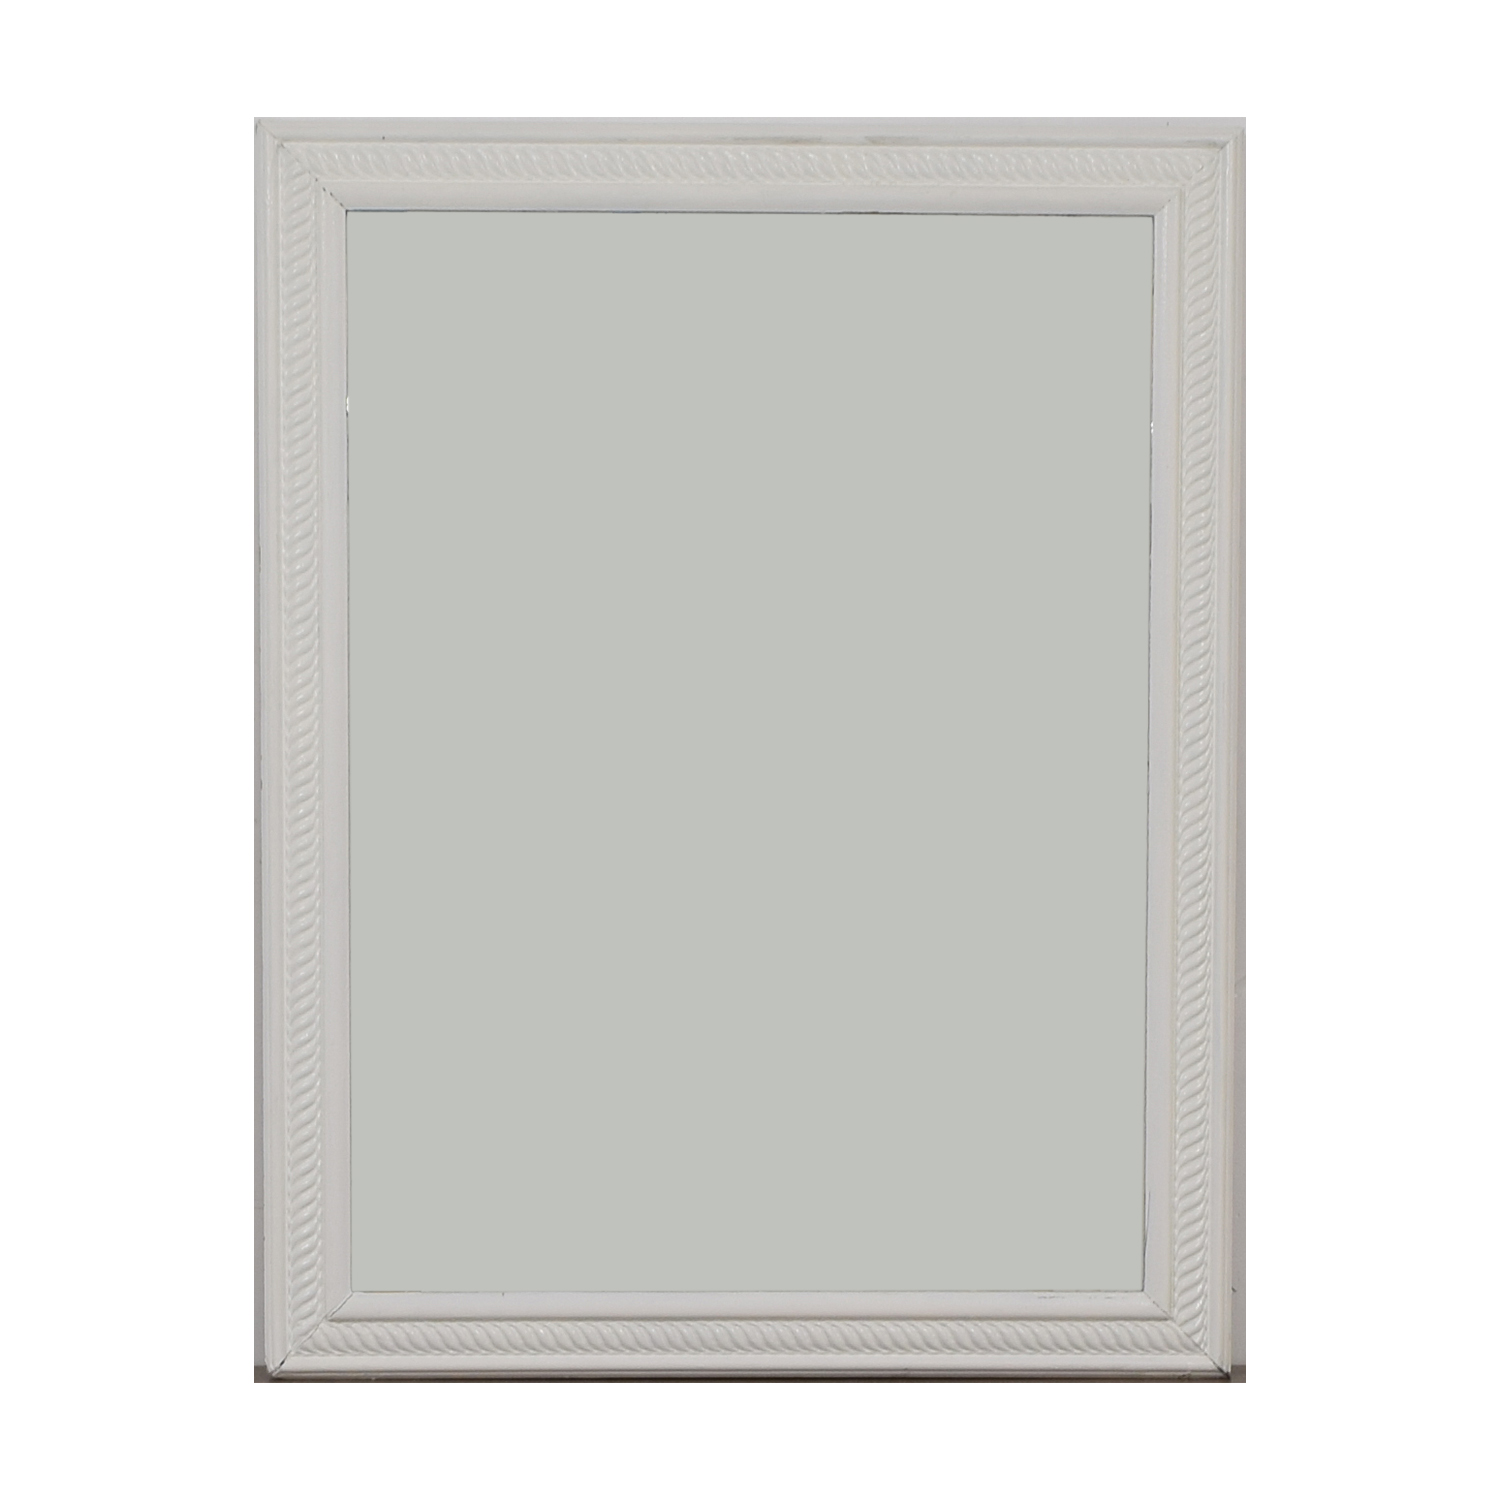 White Frames Wall Mirror for sale